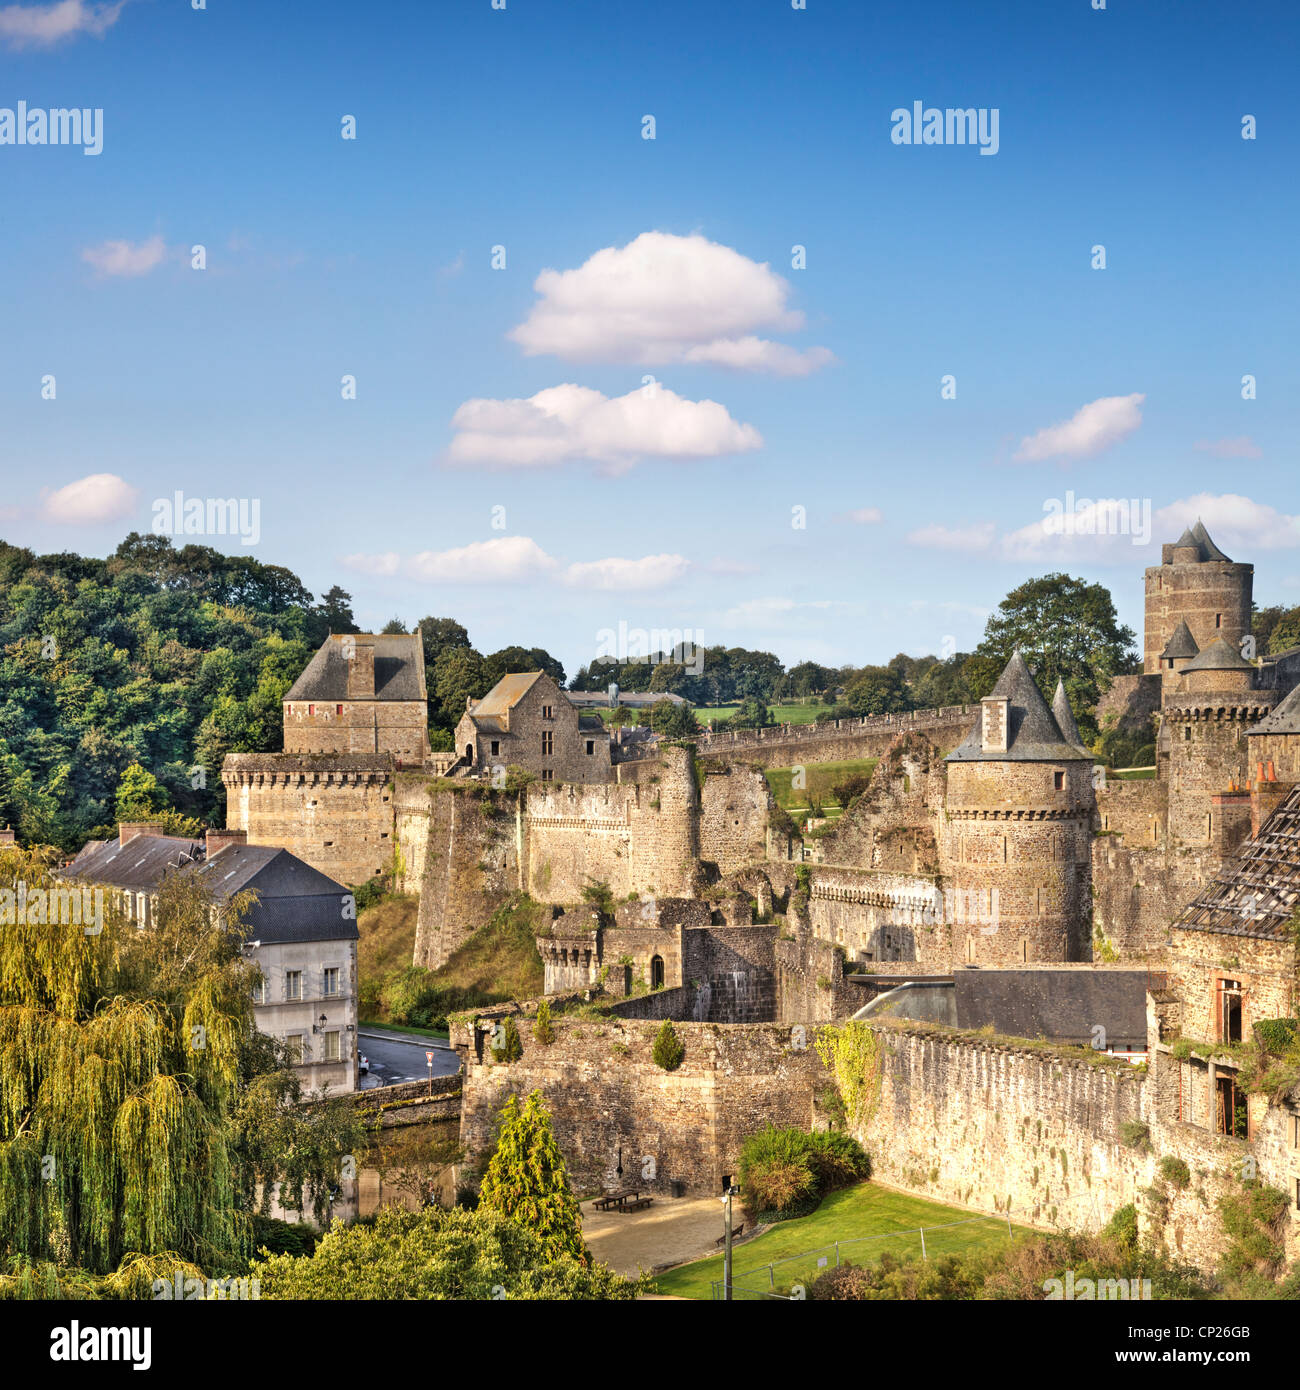 The medieval castle and town of Fougeres, Brittany, France, - Stock Image